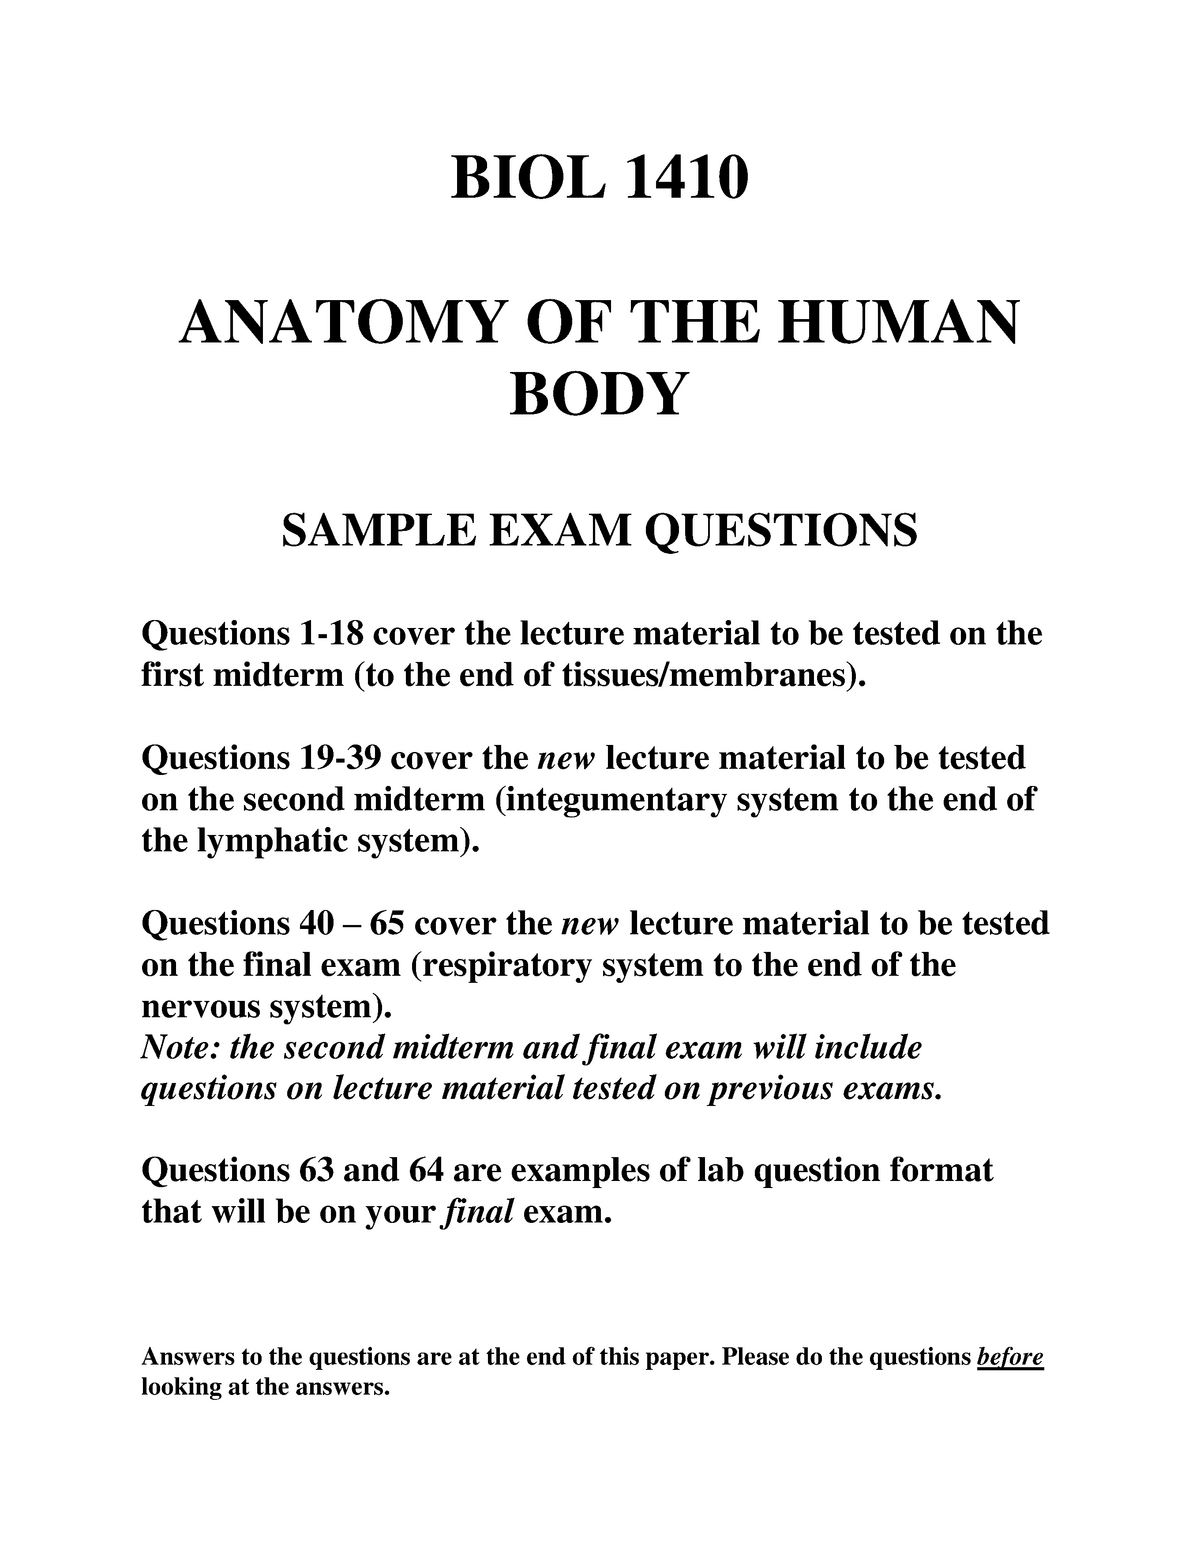 Sample/practice exam 2015, questions and answers - BIOL1410